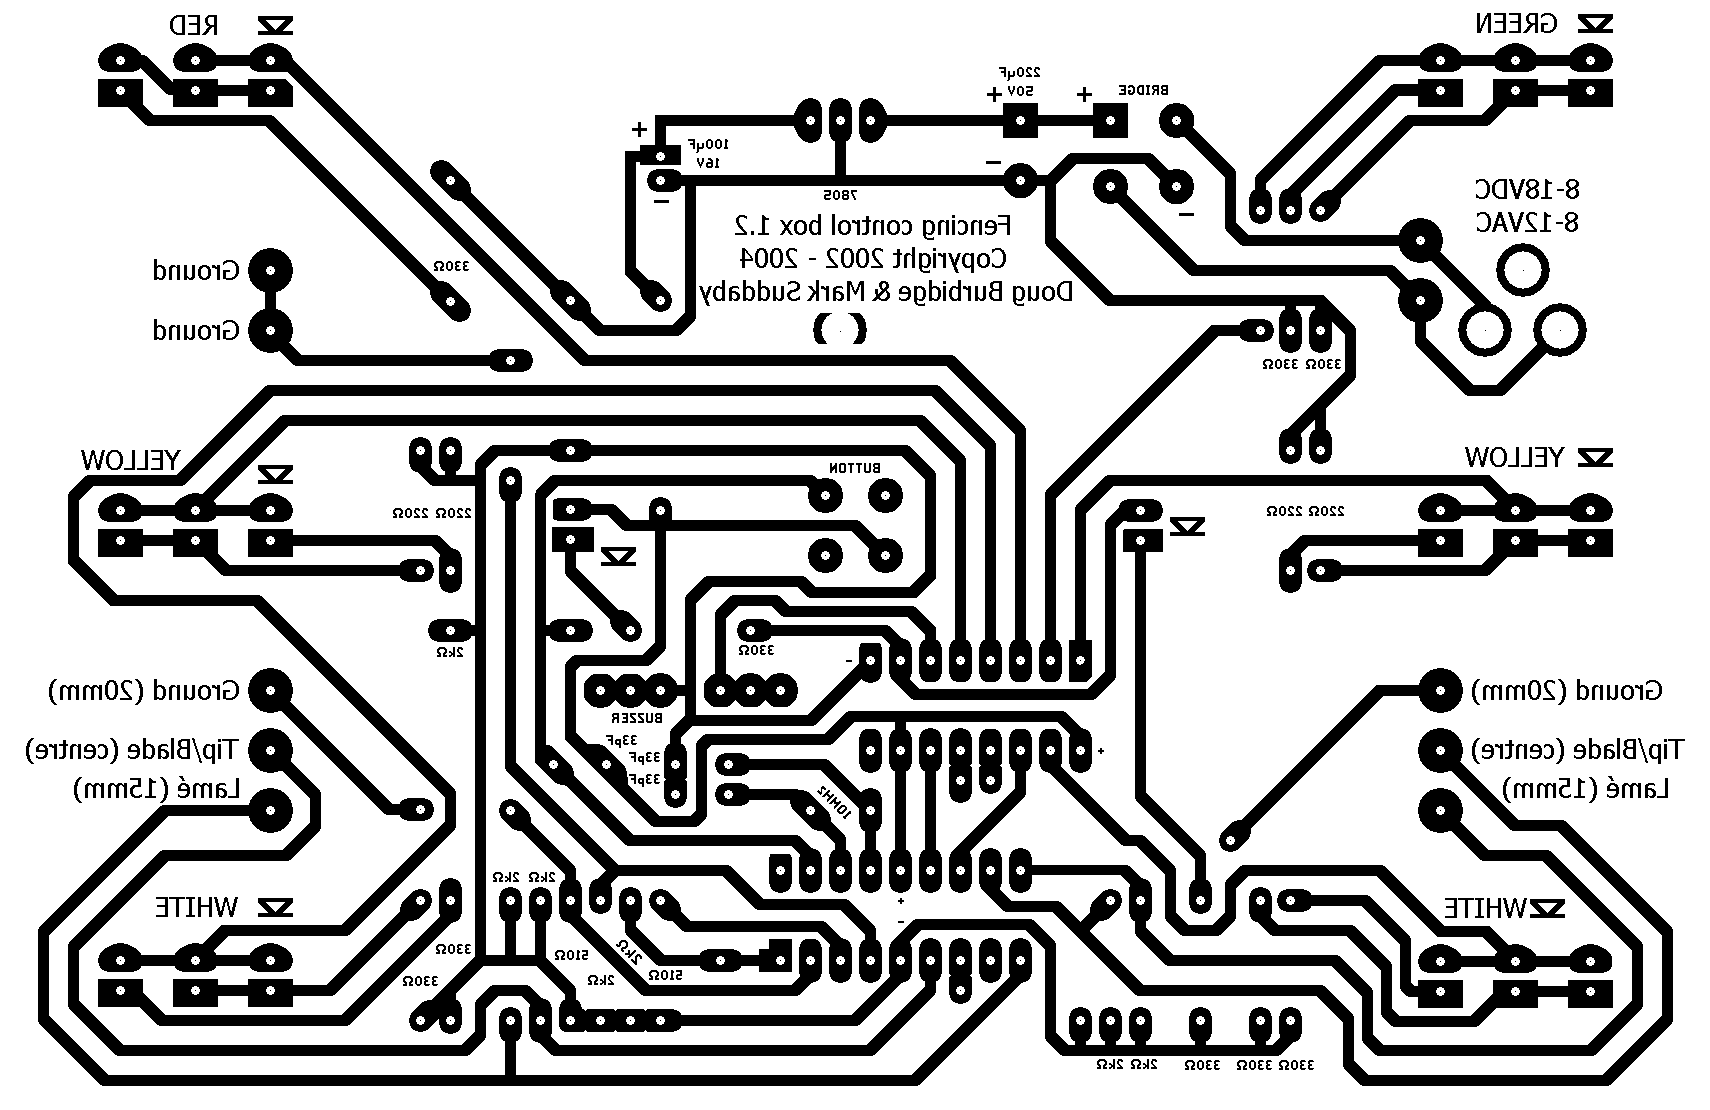 Simple Fencing Control Box Electric Fence Wire Diagram Here Is A Schematic Pcb Artwork